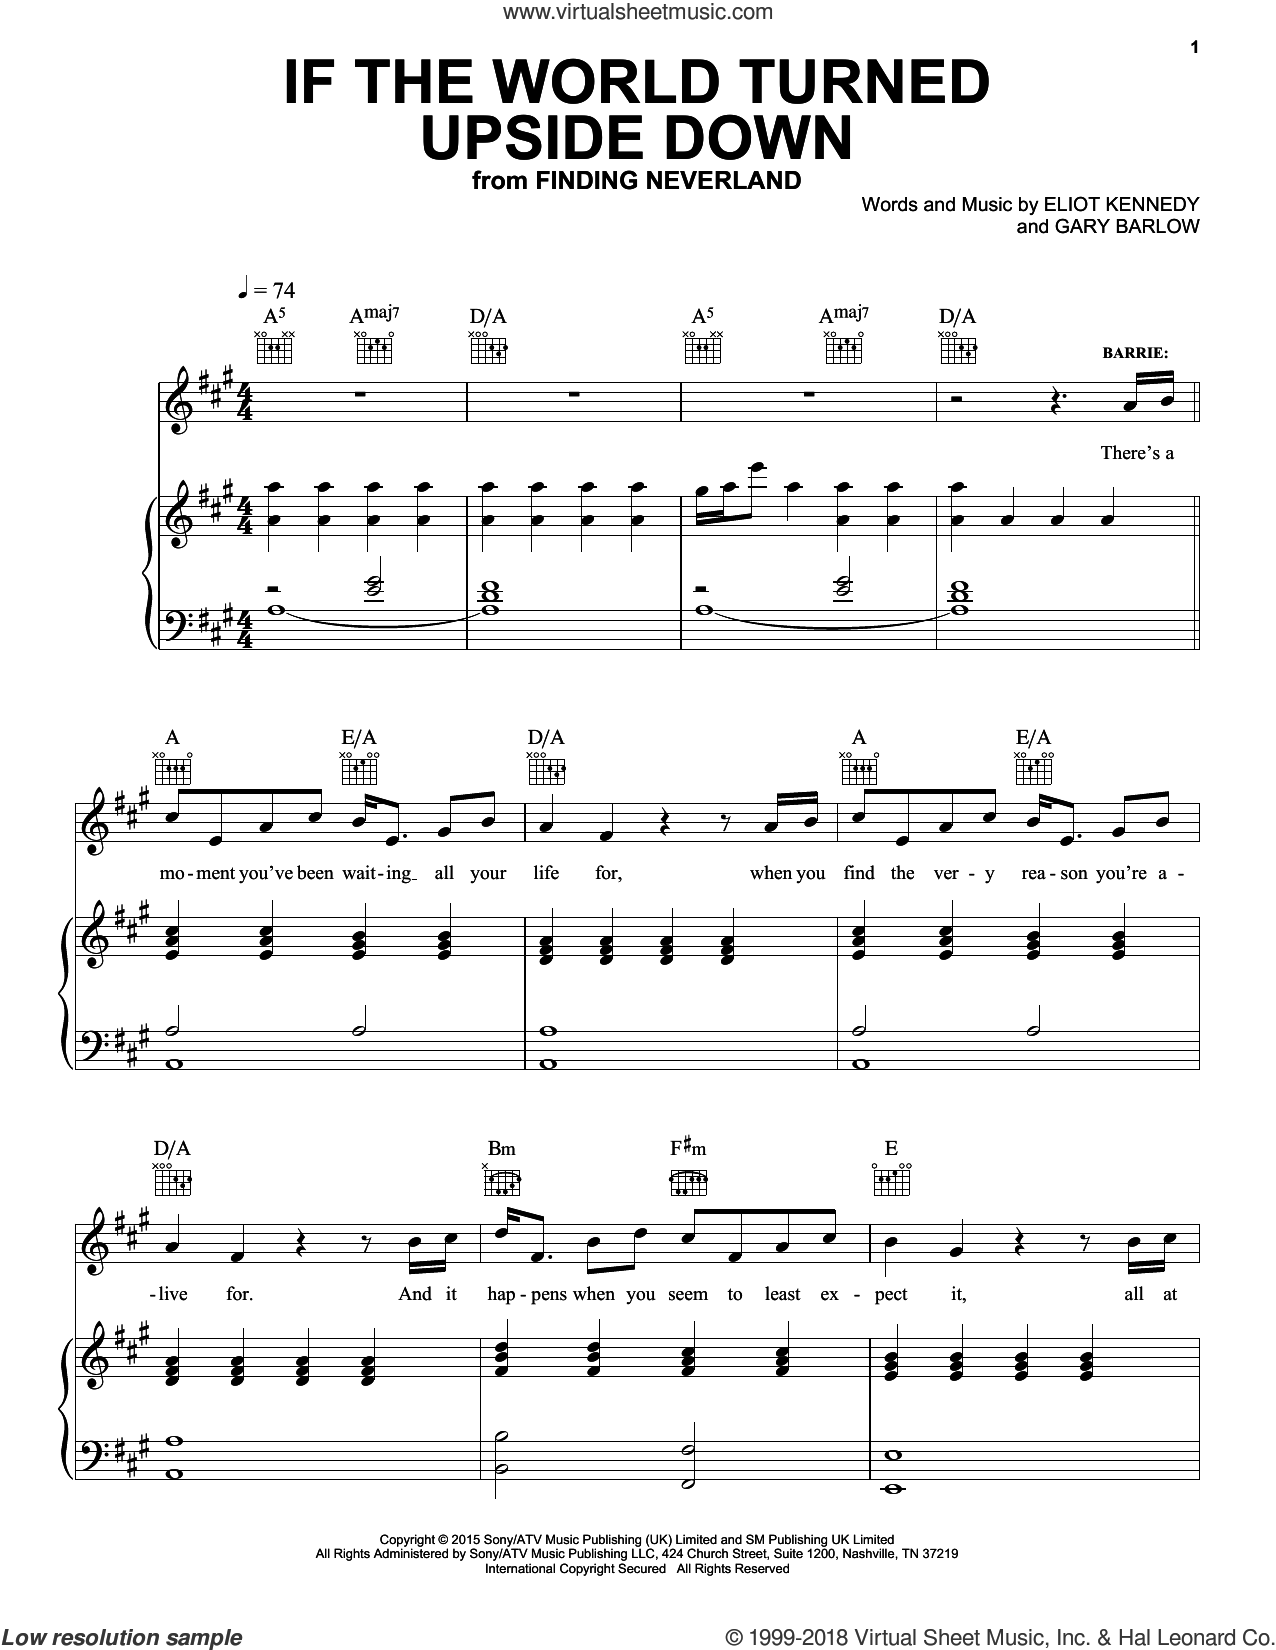 If The World Turned Upside Down sheet music for voice, piano or guitar by Gary Barlow and Eliot Kennedy. Score Image Preview.